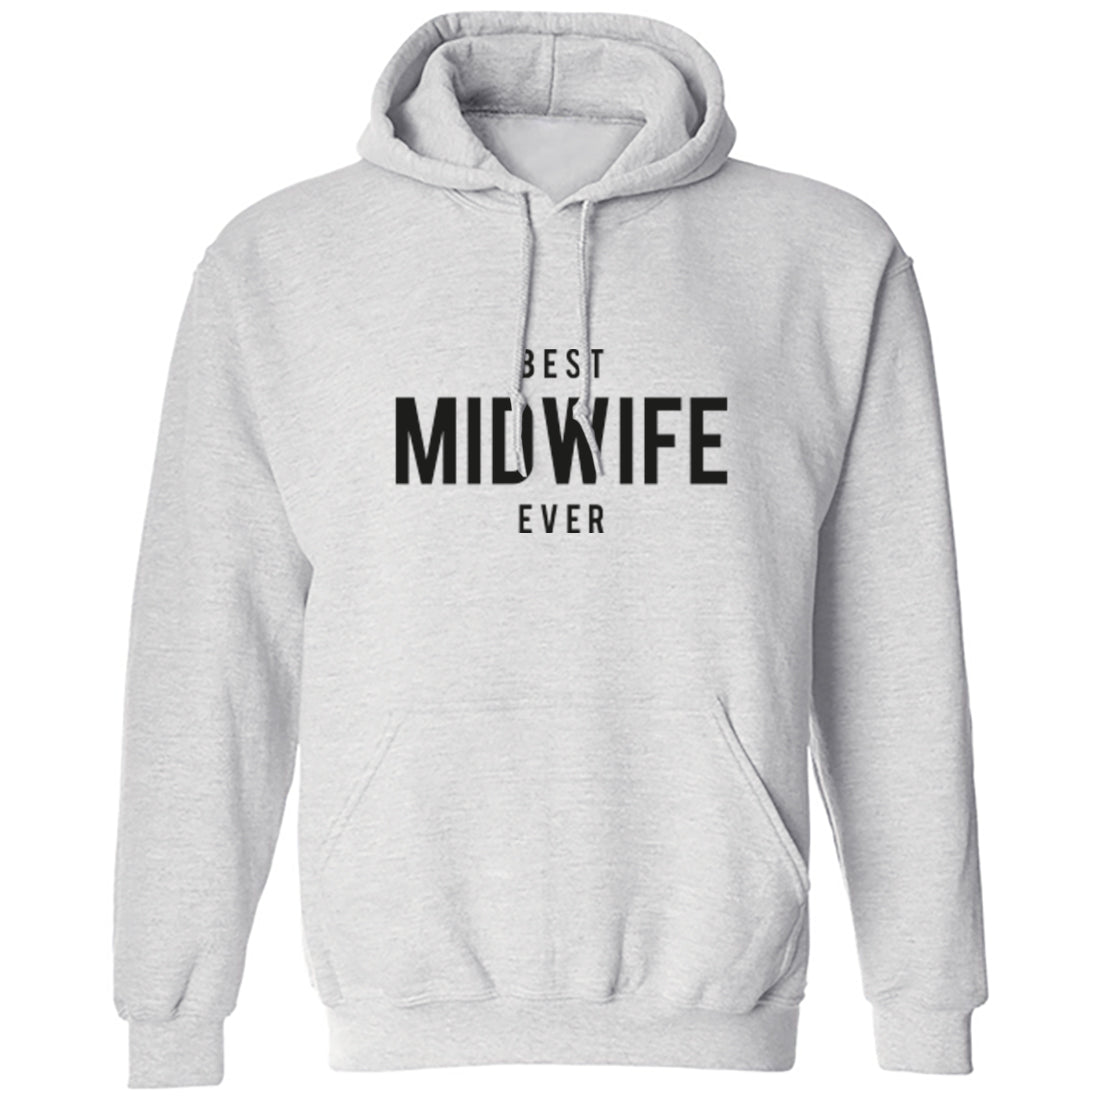 Best Midwife Ever Unisex Hoodie K1503 - Illustrated Identity Ltd.